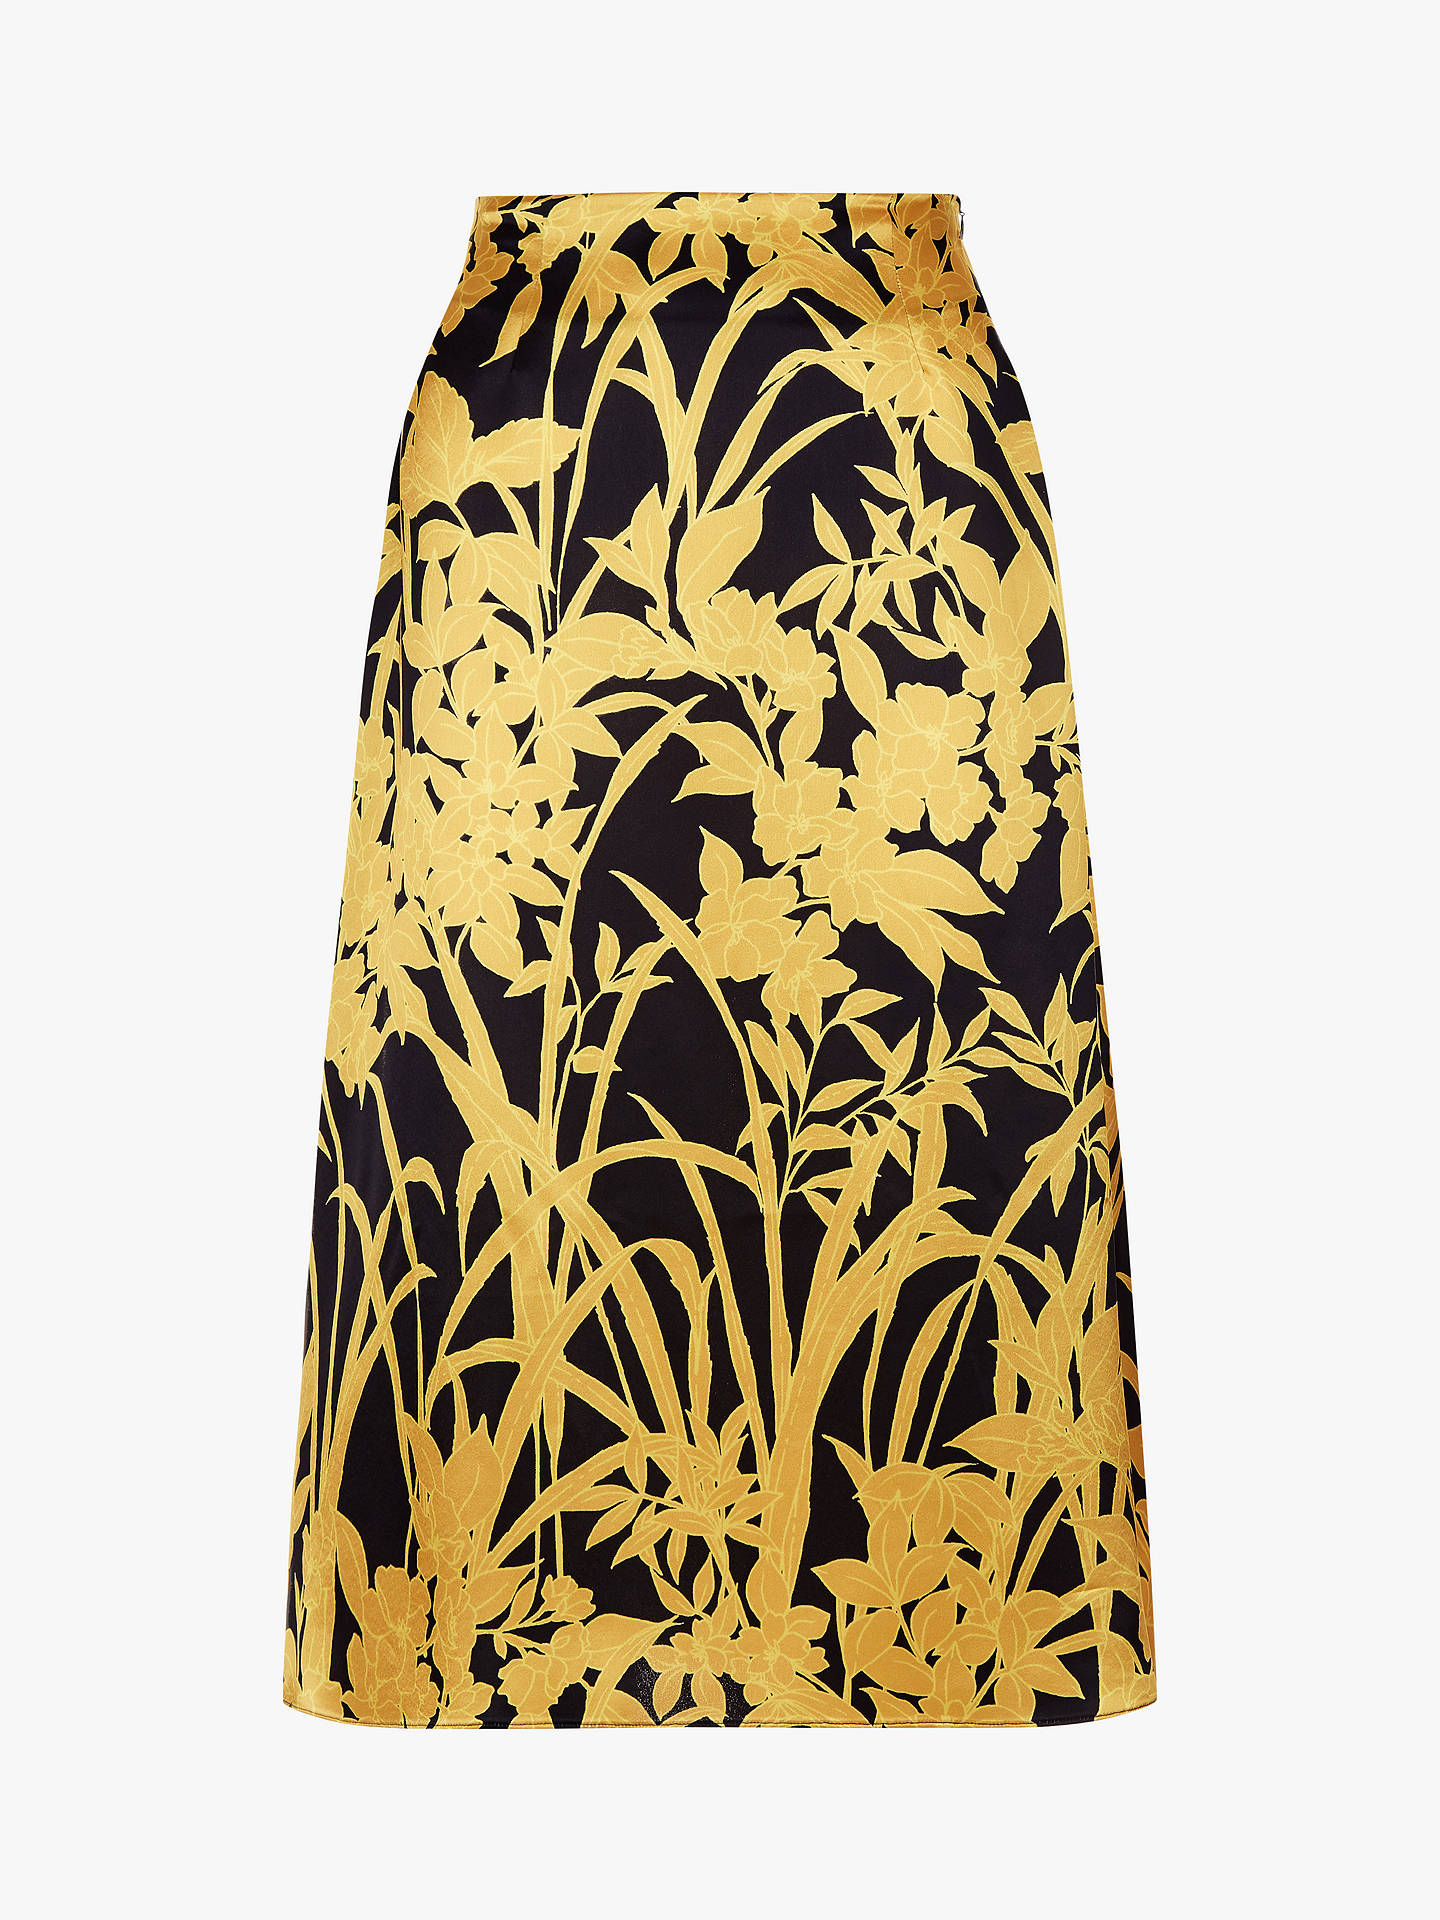 BuyJaeger Gold Leaf Print Skirt, Black, 6 Online at johnlewis.com